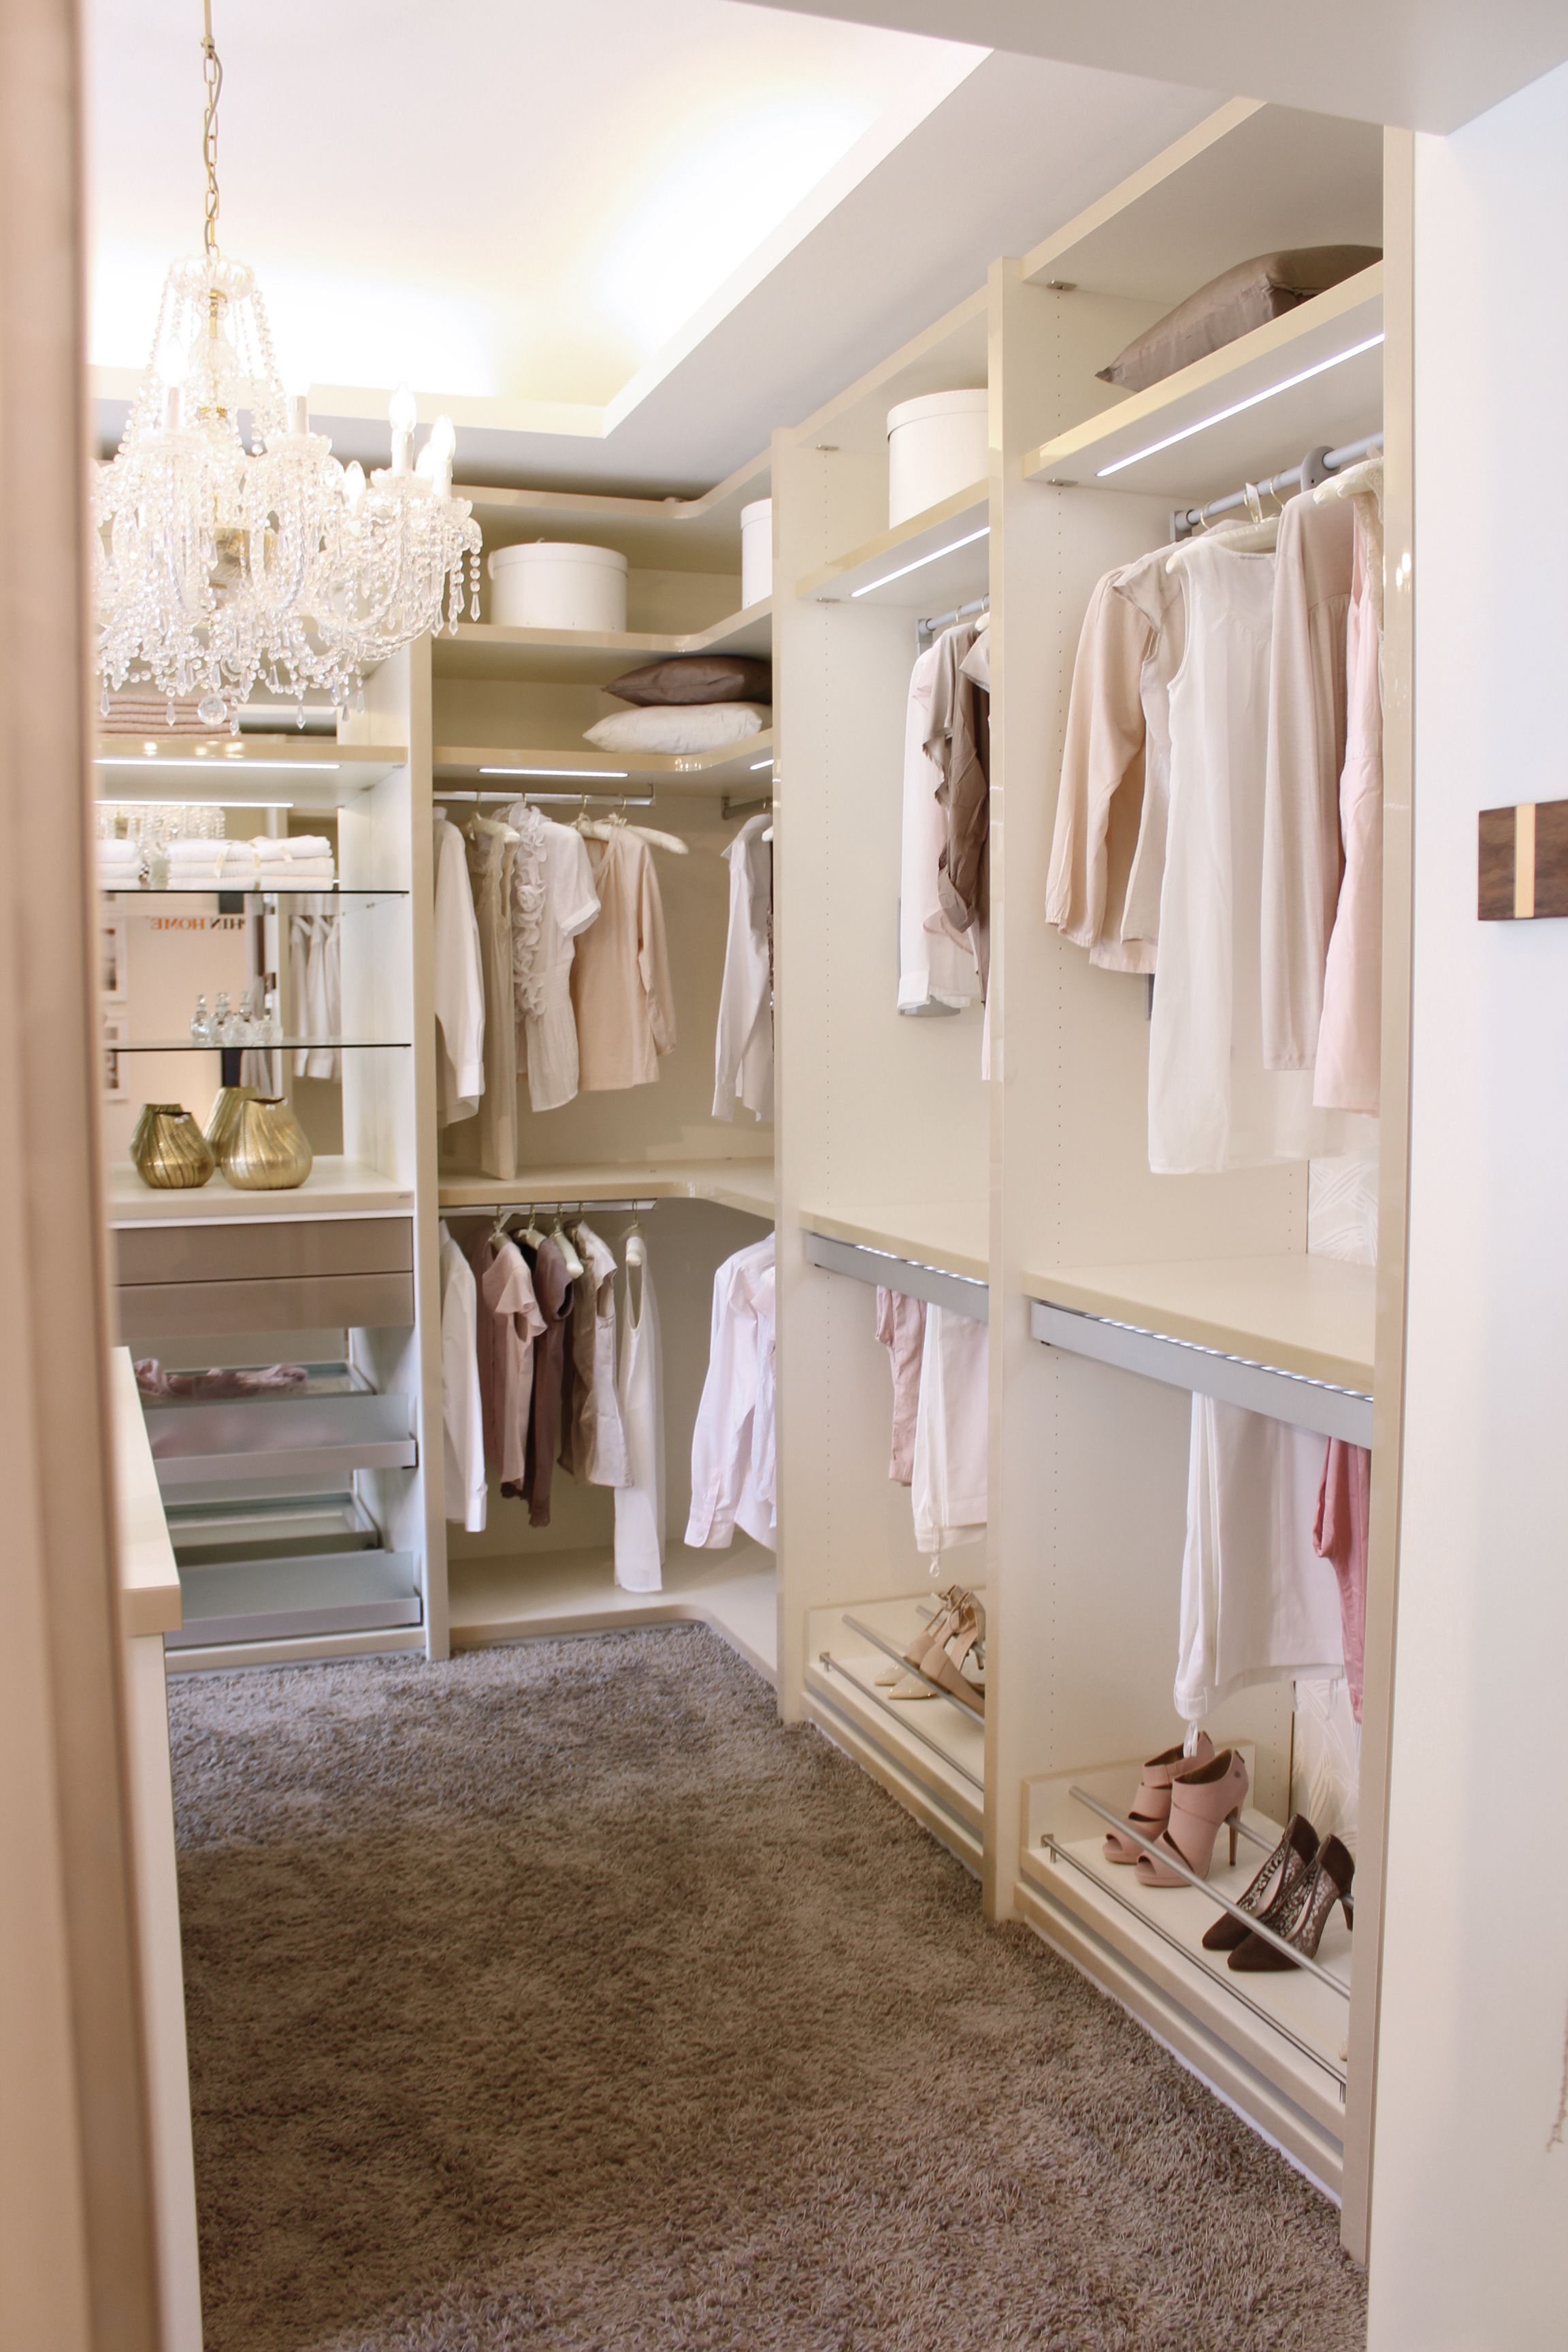 Cool 89 Clever DIY Closet Design Ideas and Organization s